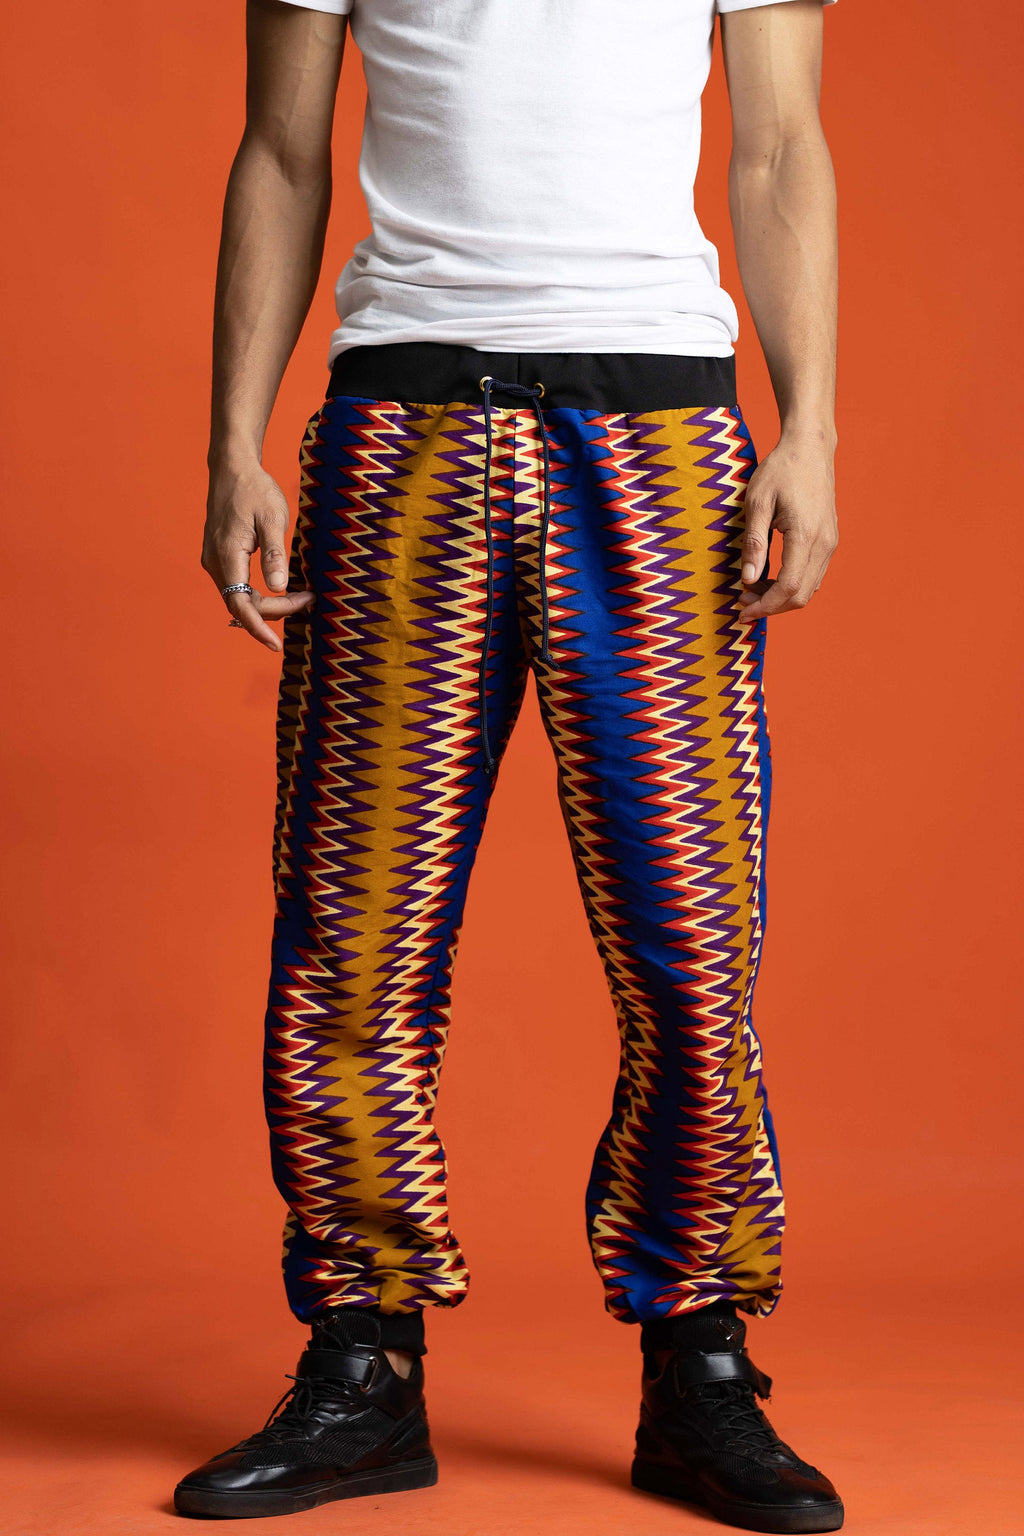 Lounge Pants, Zig Zag Print Pants, Men African Trousers, Festival Clothing, Loose Pants, Summer Trousers, Rave Party Clothing,Hippie Pants